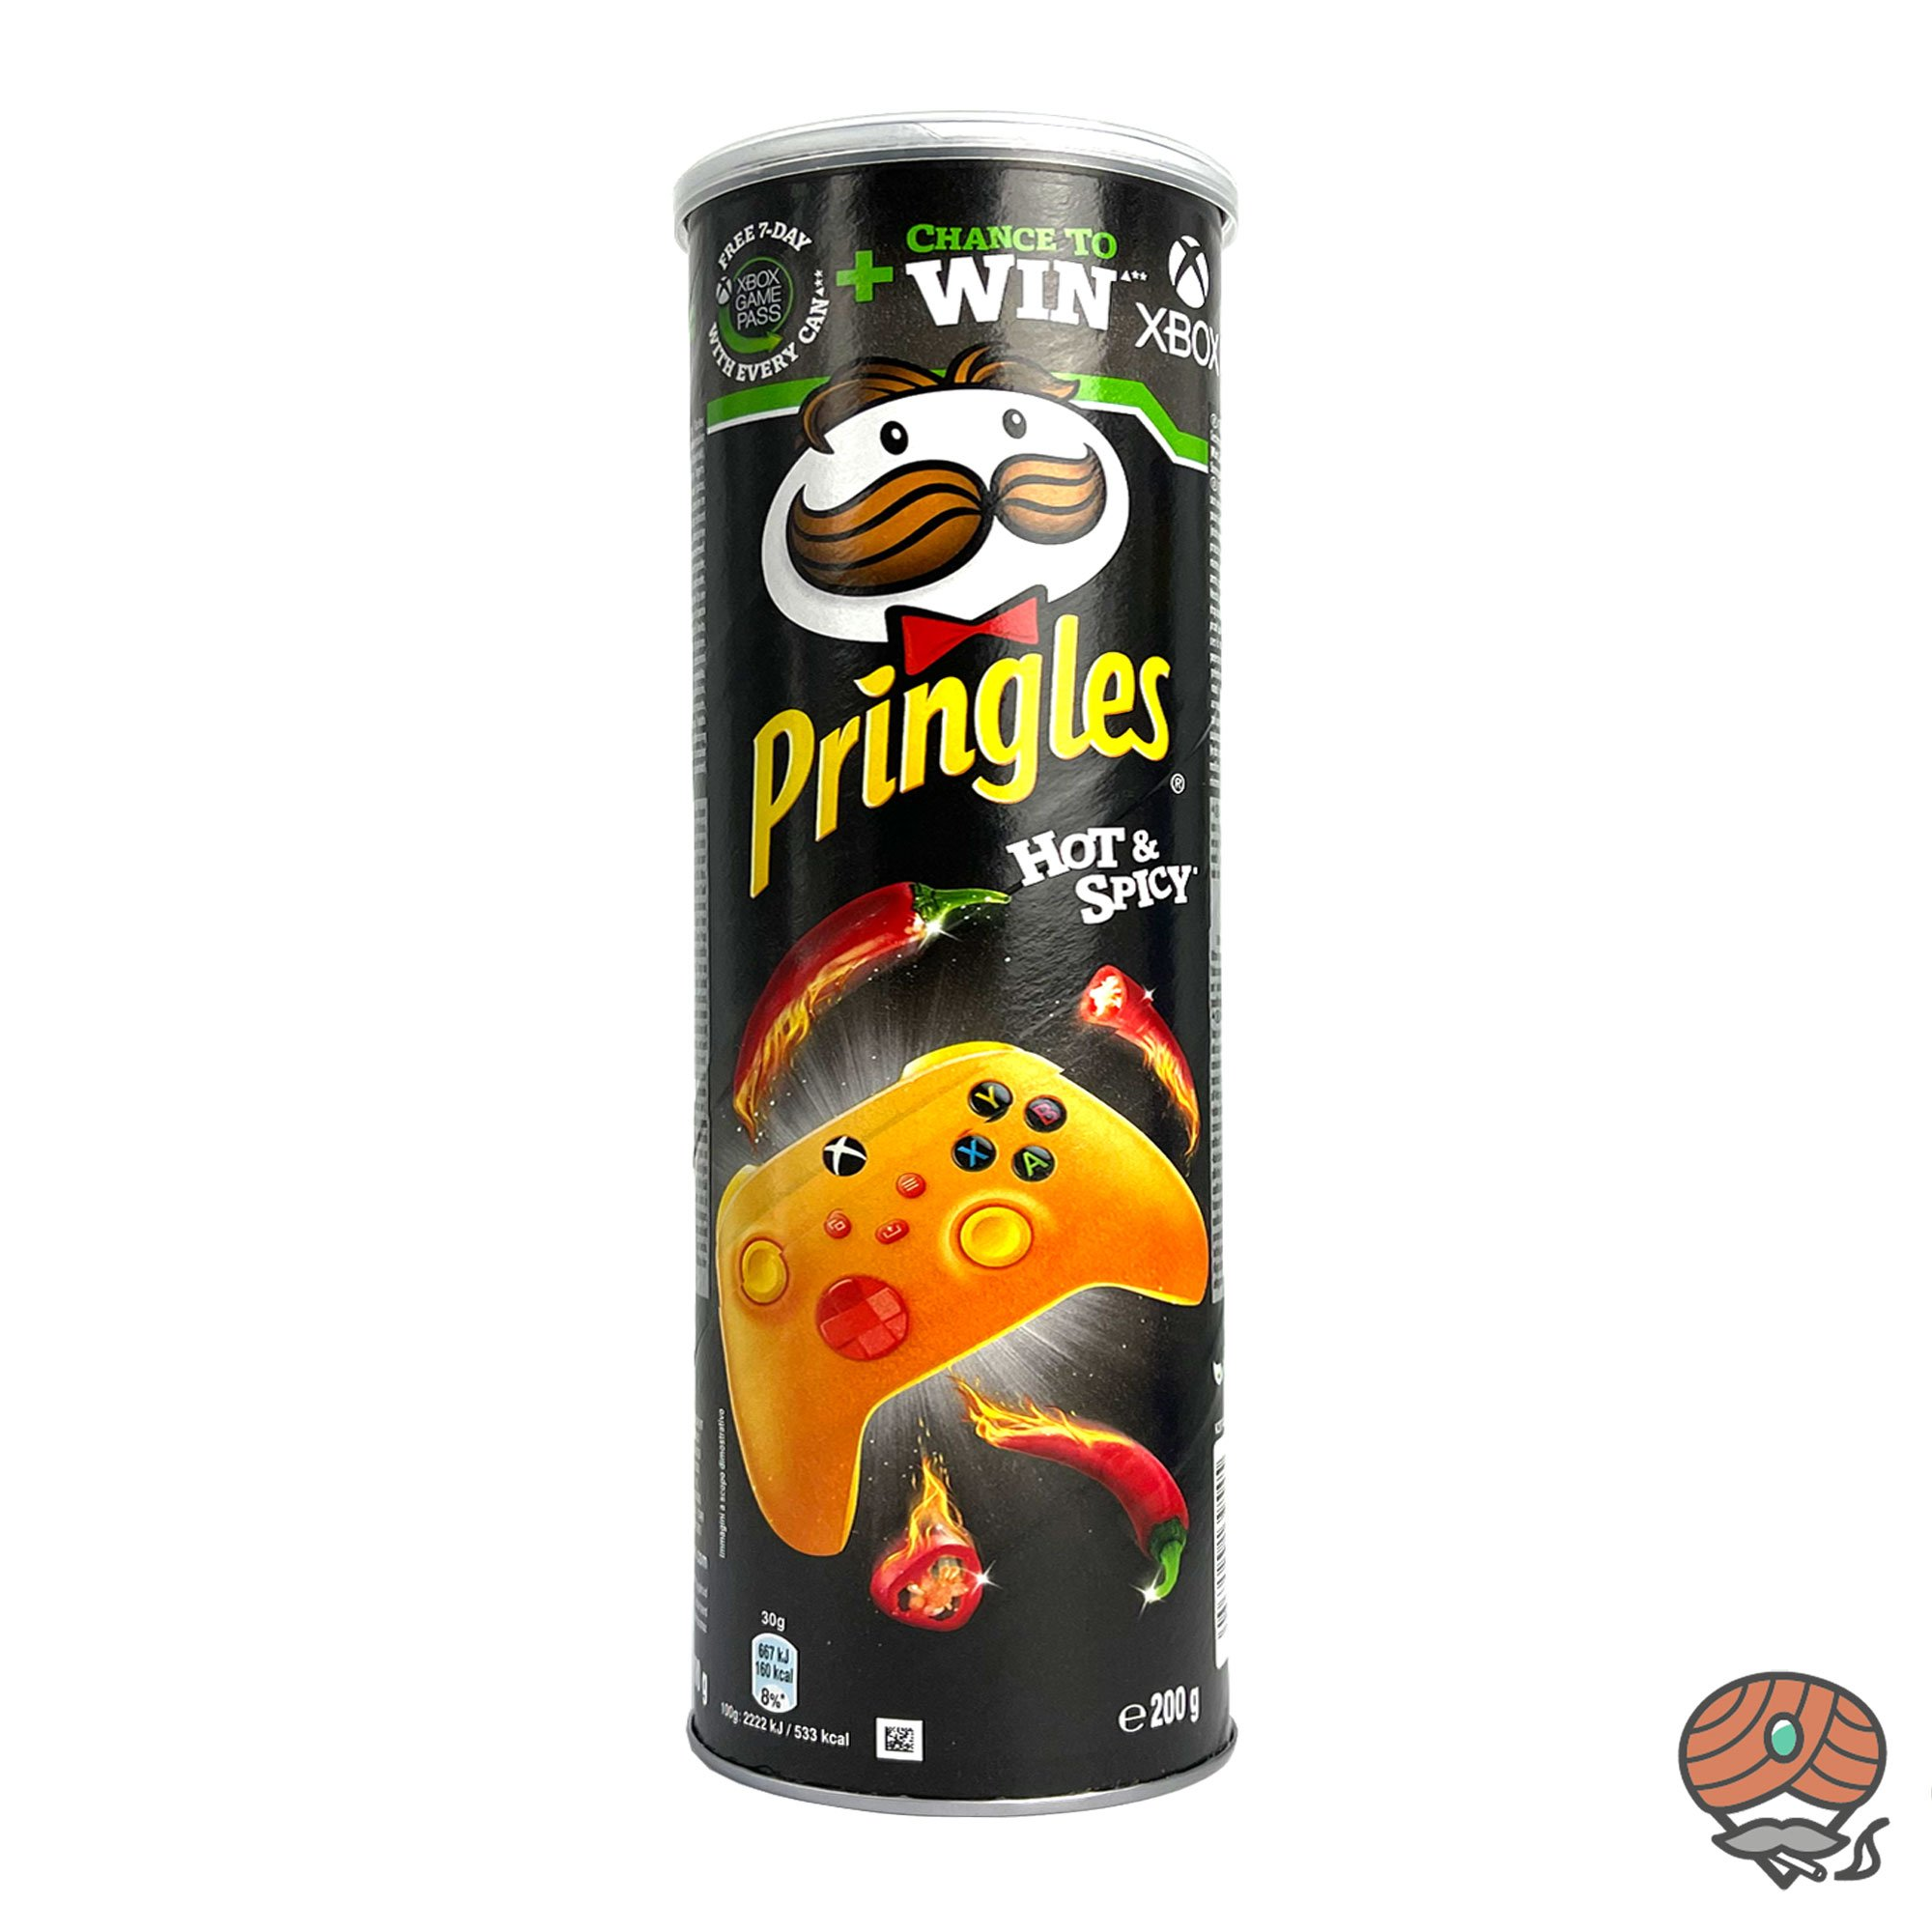 Pringles Hot & Spicy 200g Dose